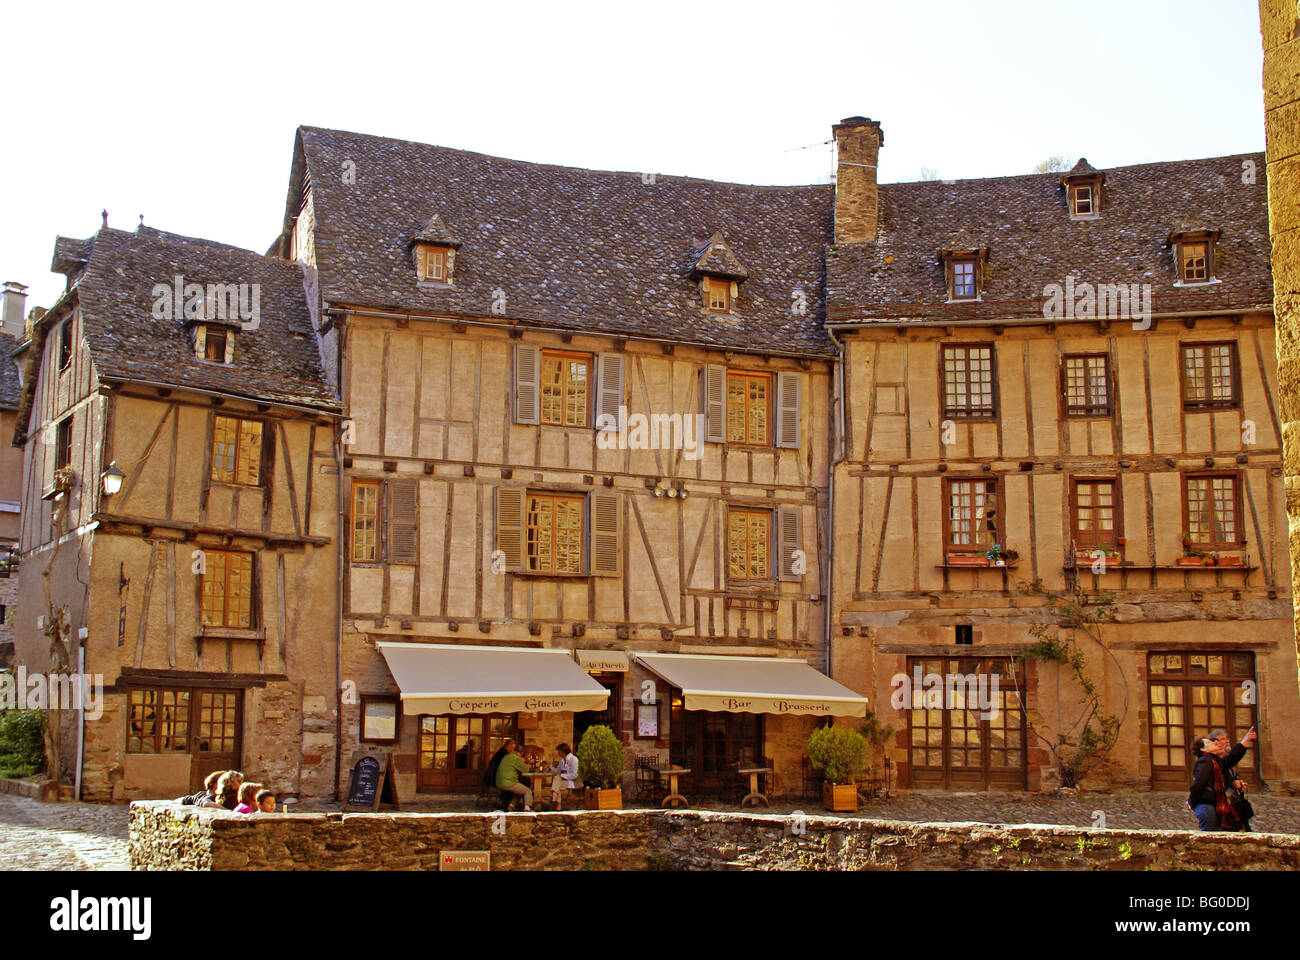 The old pilgrimage town of Conques in France. Mediaeval buildings in the main square. - Stock Image